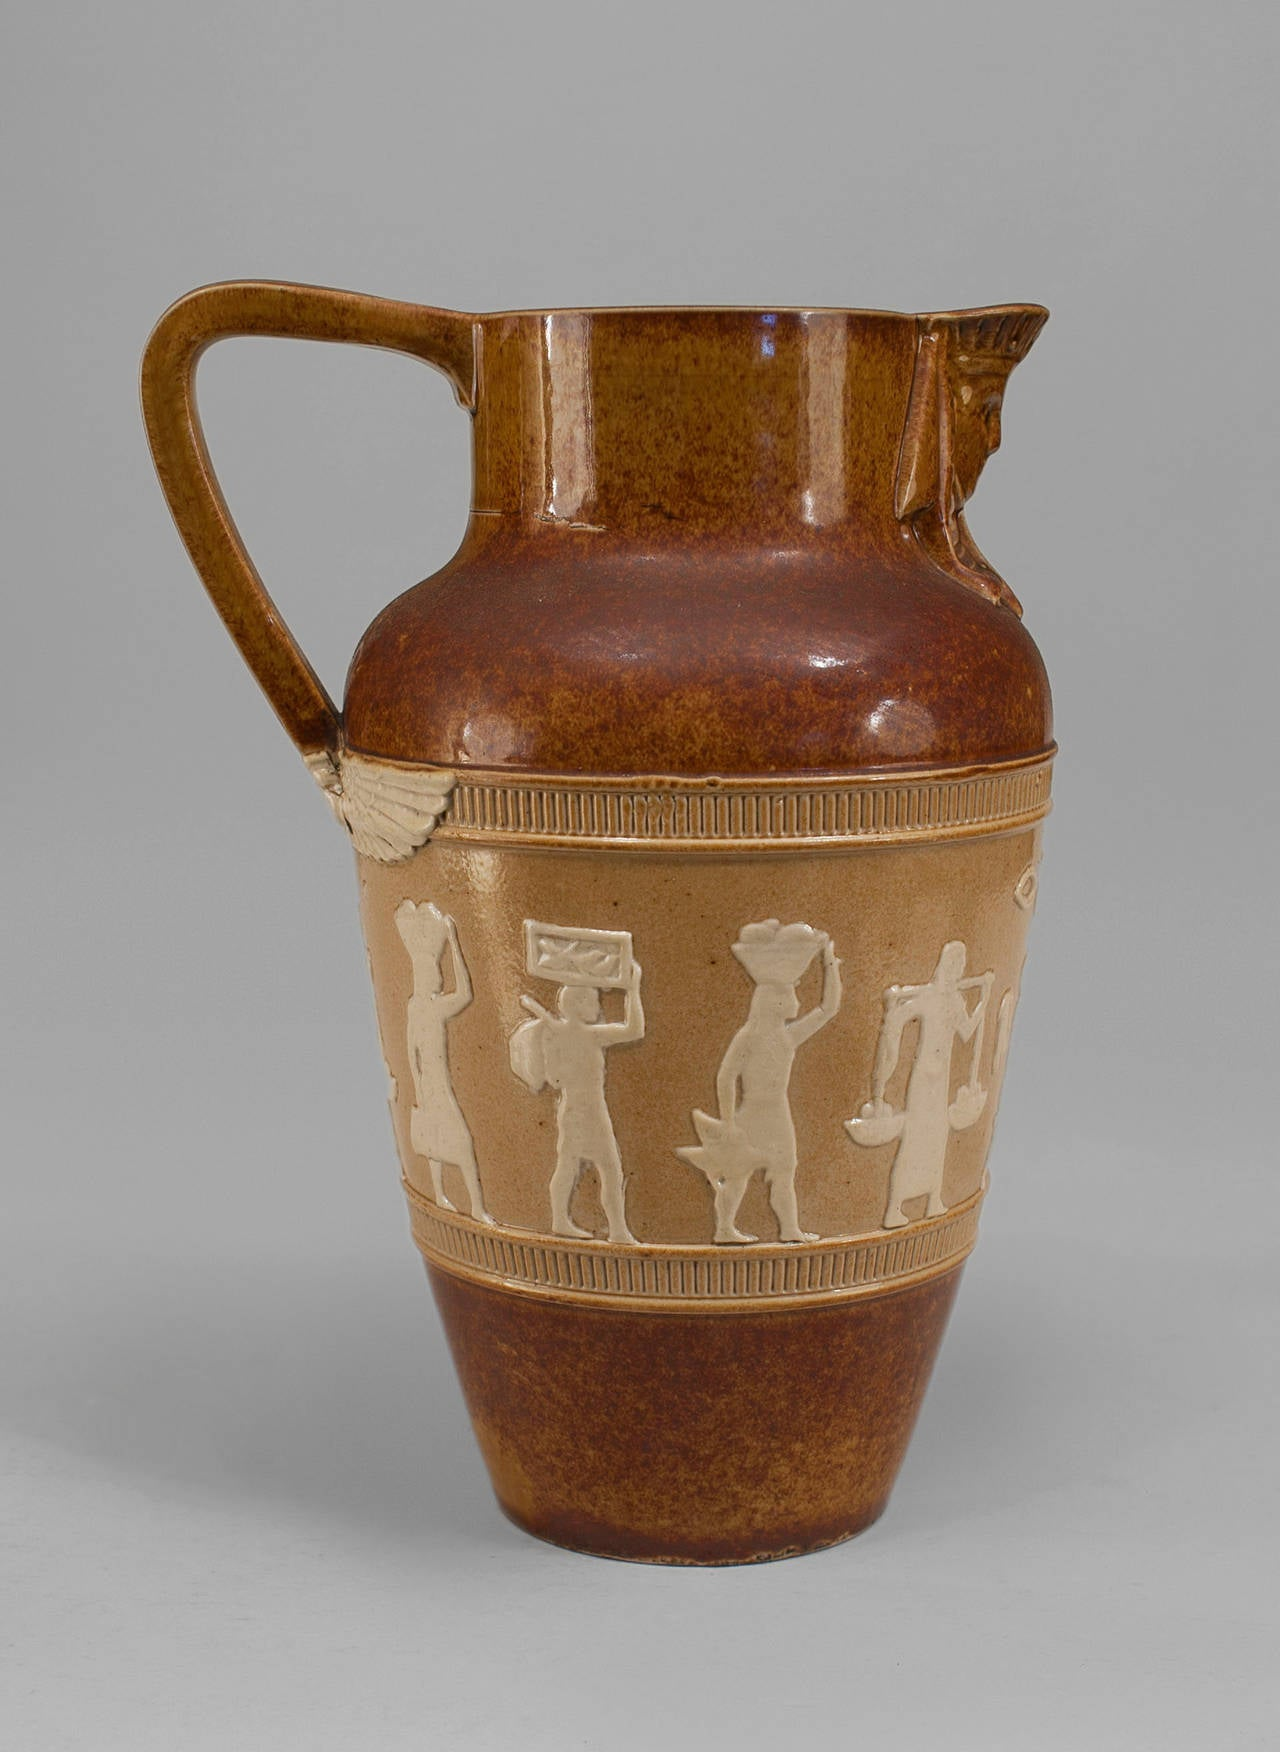 British 1920s English Egyptian Revival Pitcher by Doulton For Sale